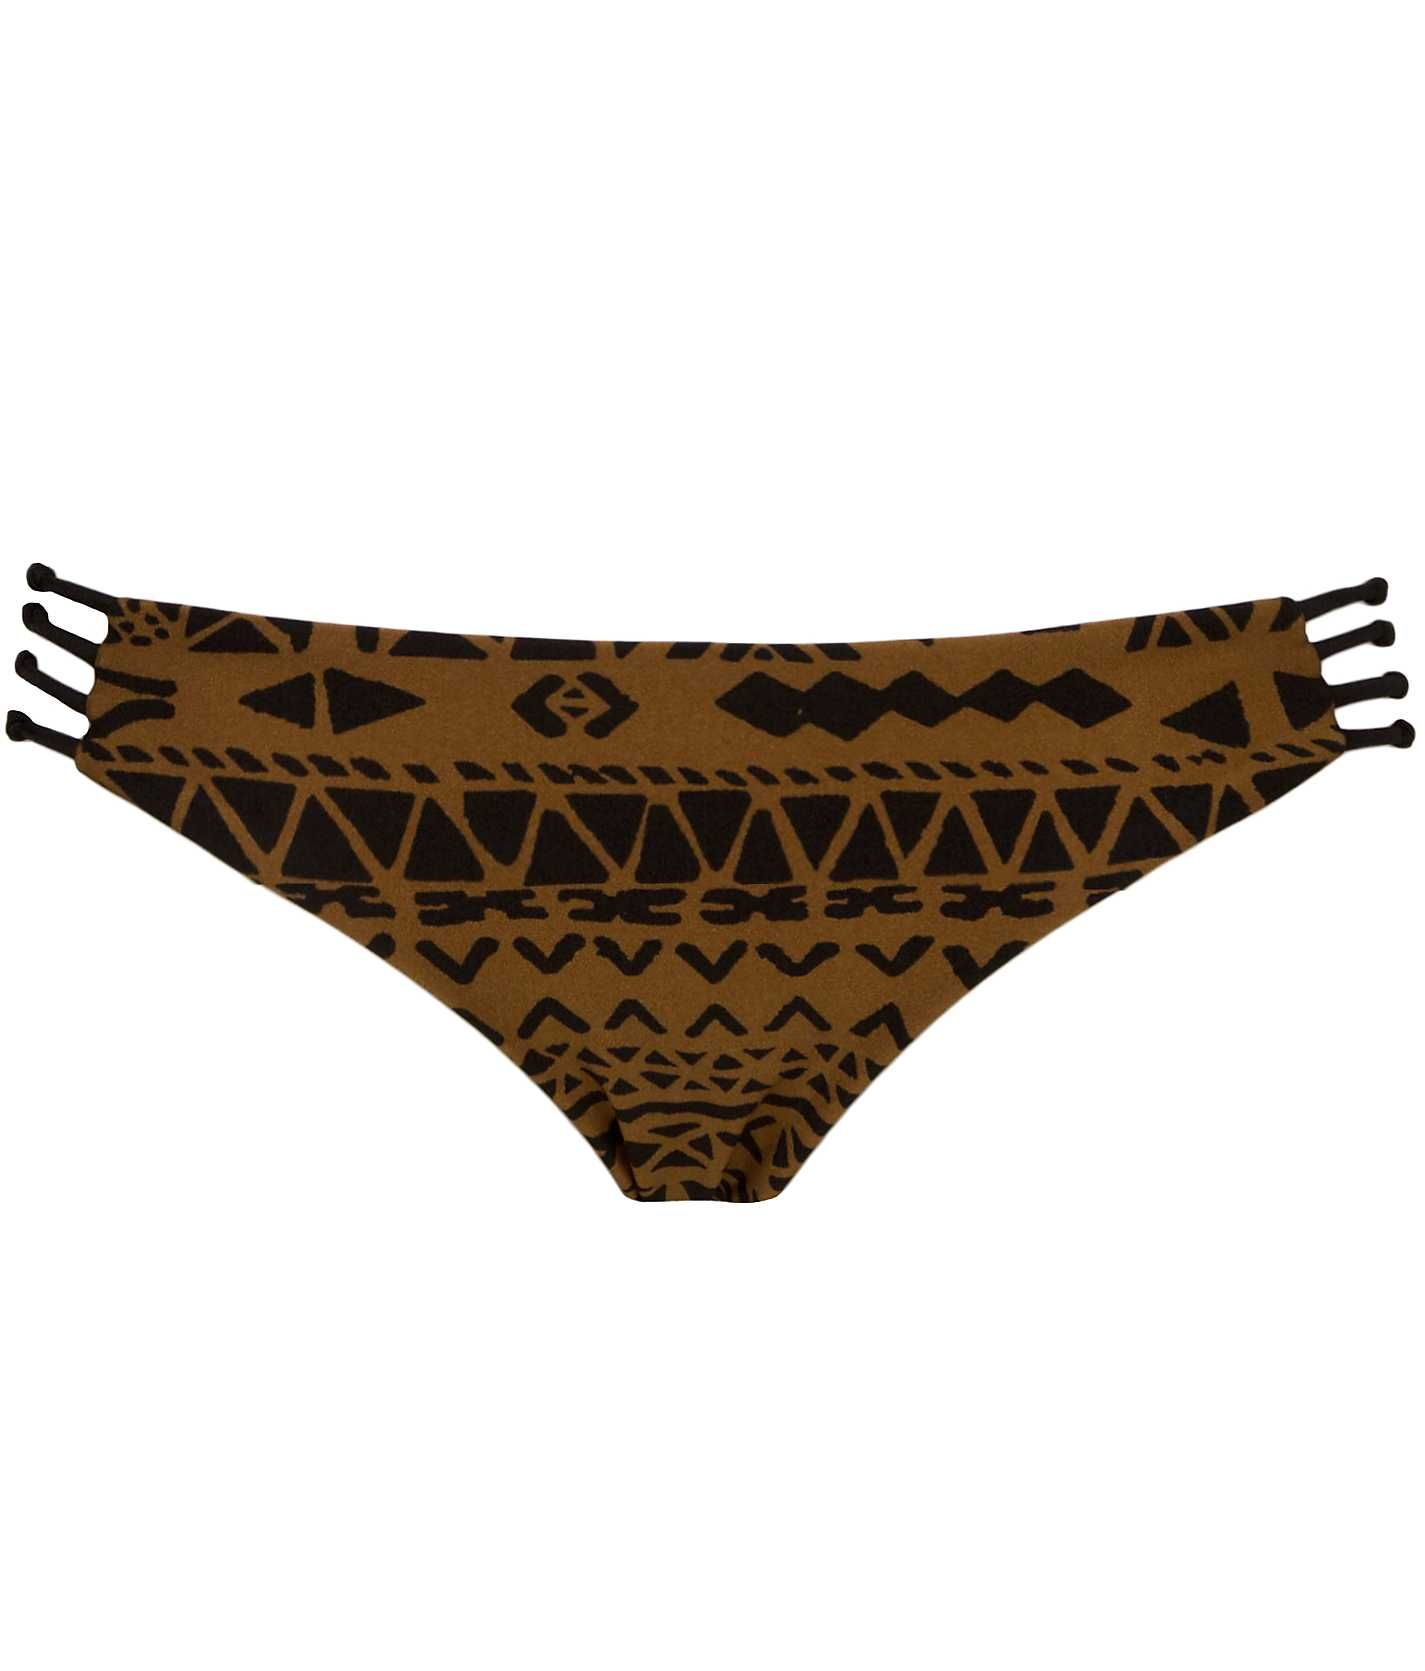 Amuse Society Mud Everyday Swimwear Bottom - Women's Swimwear | Buckle